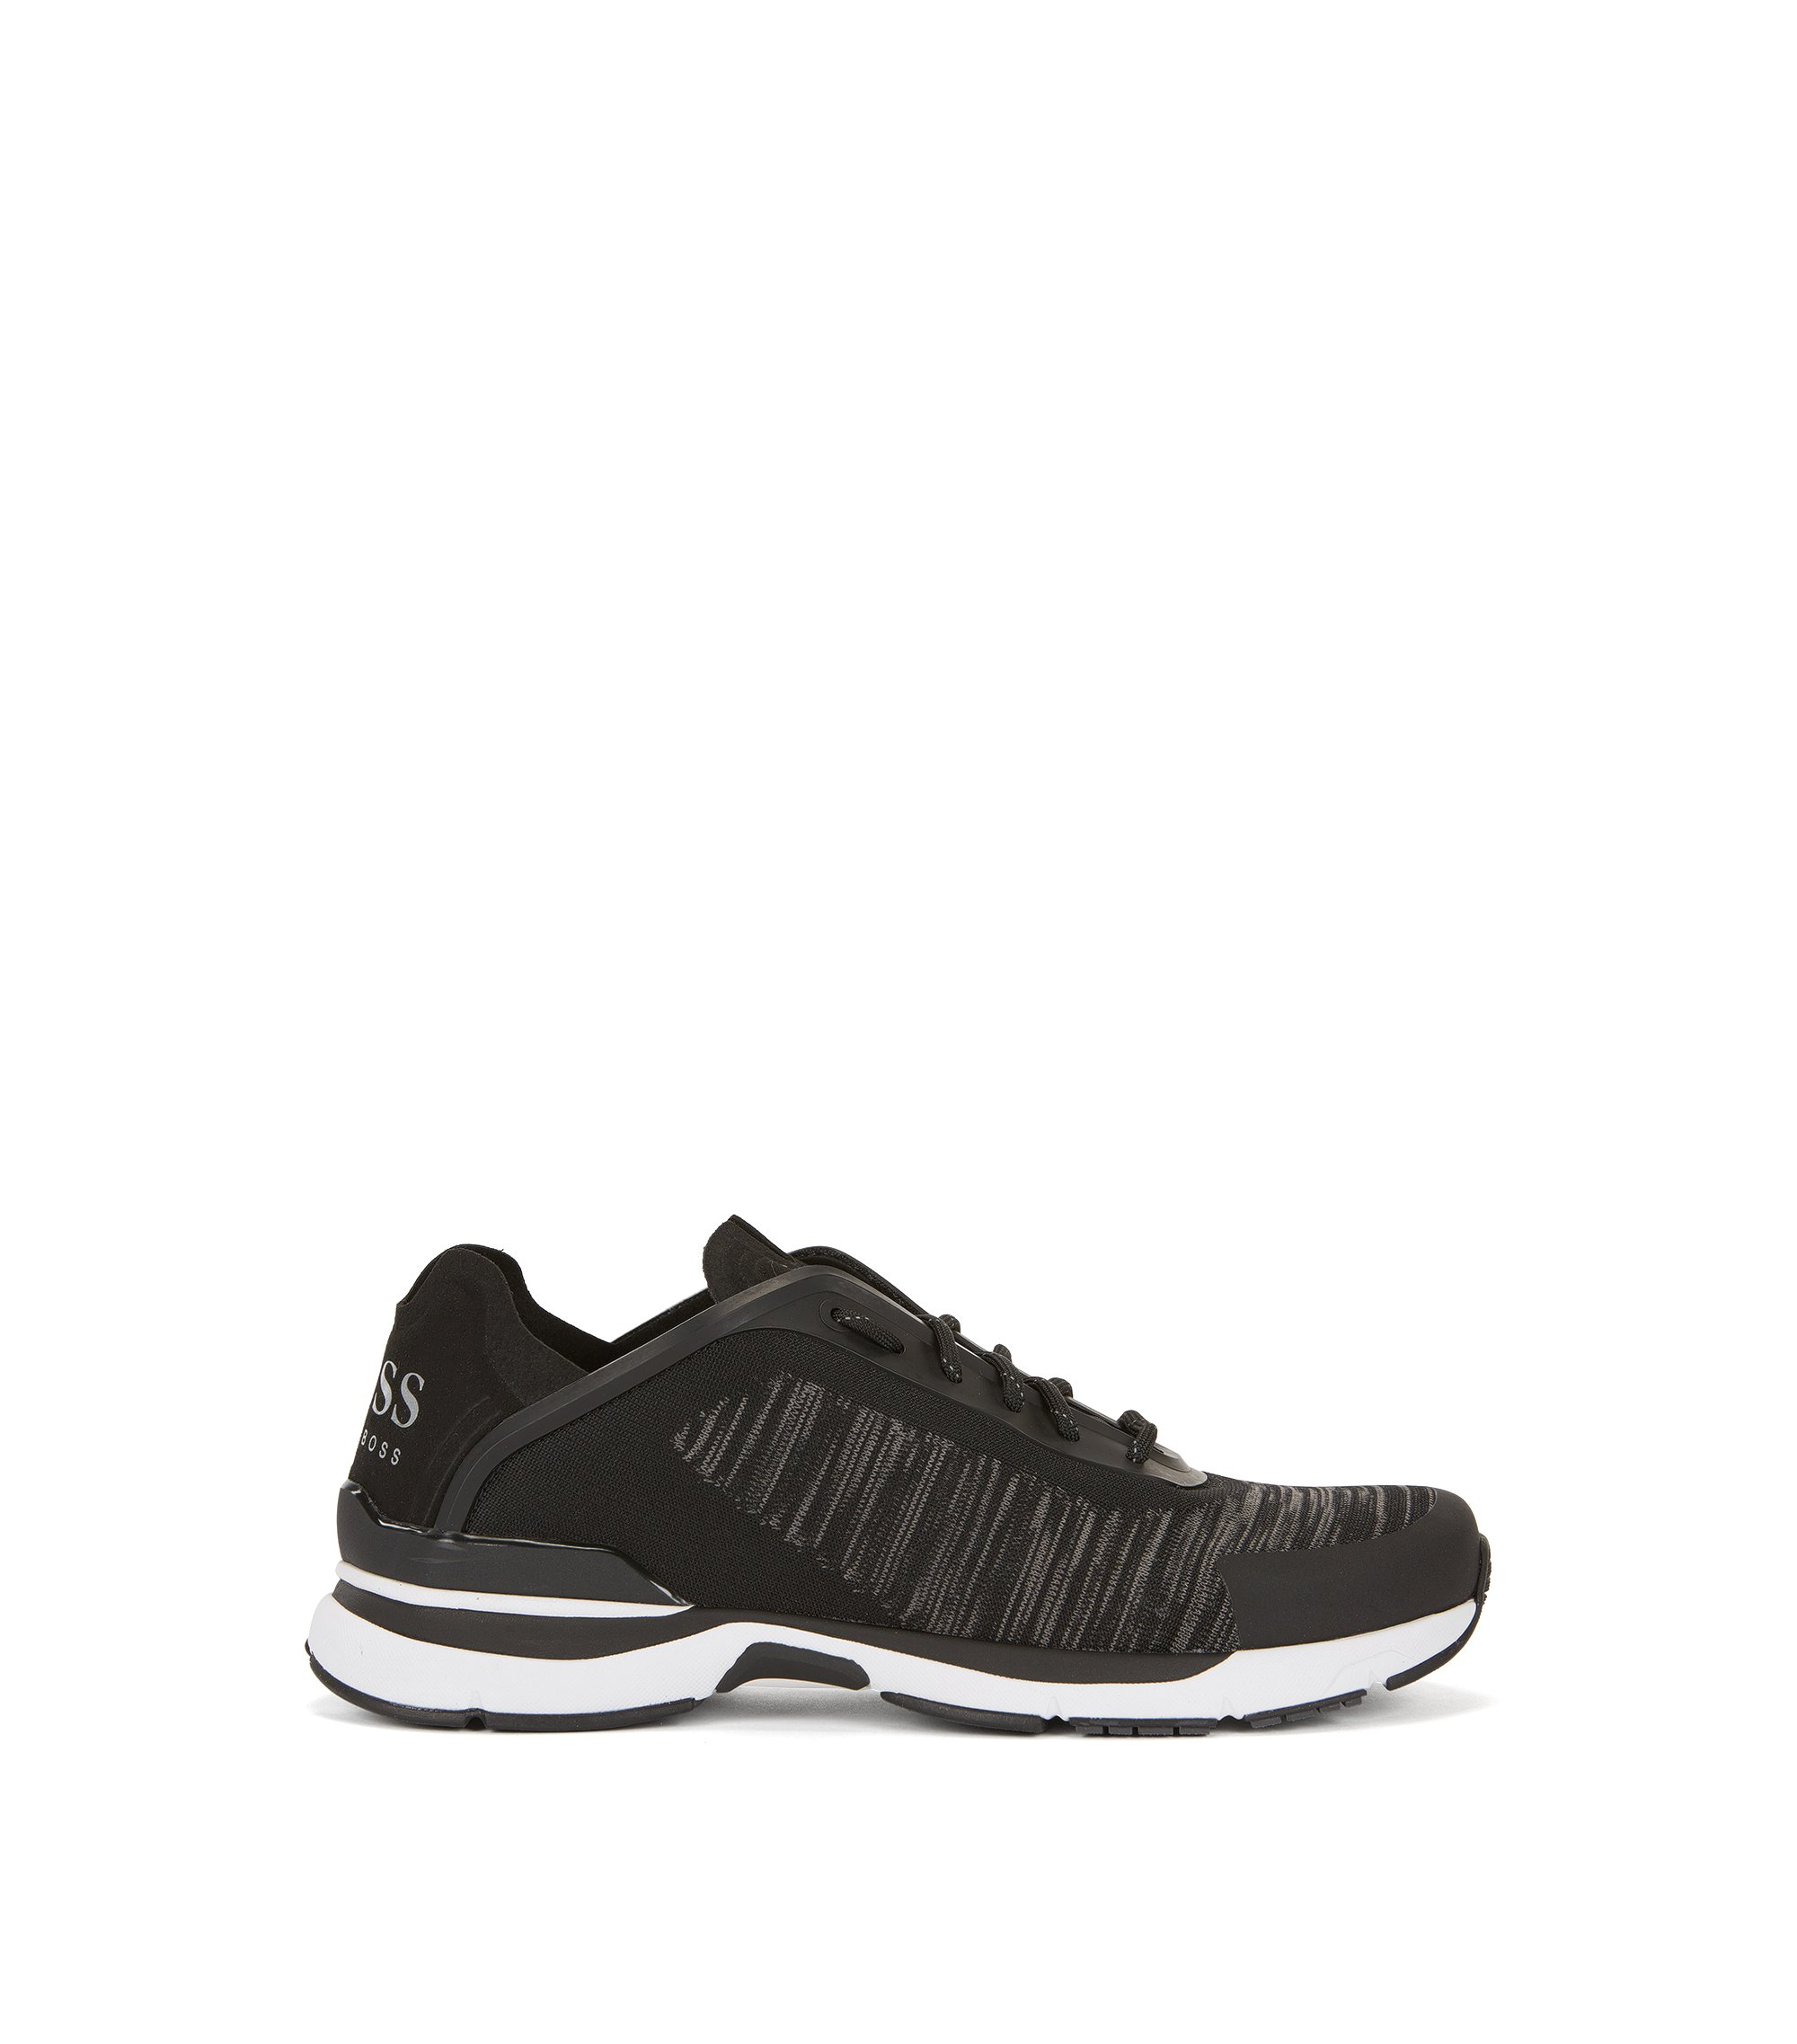 Running-inspired trainers with jacquard-knit uppers, Dark Grey